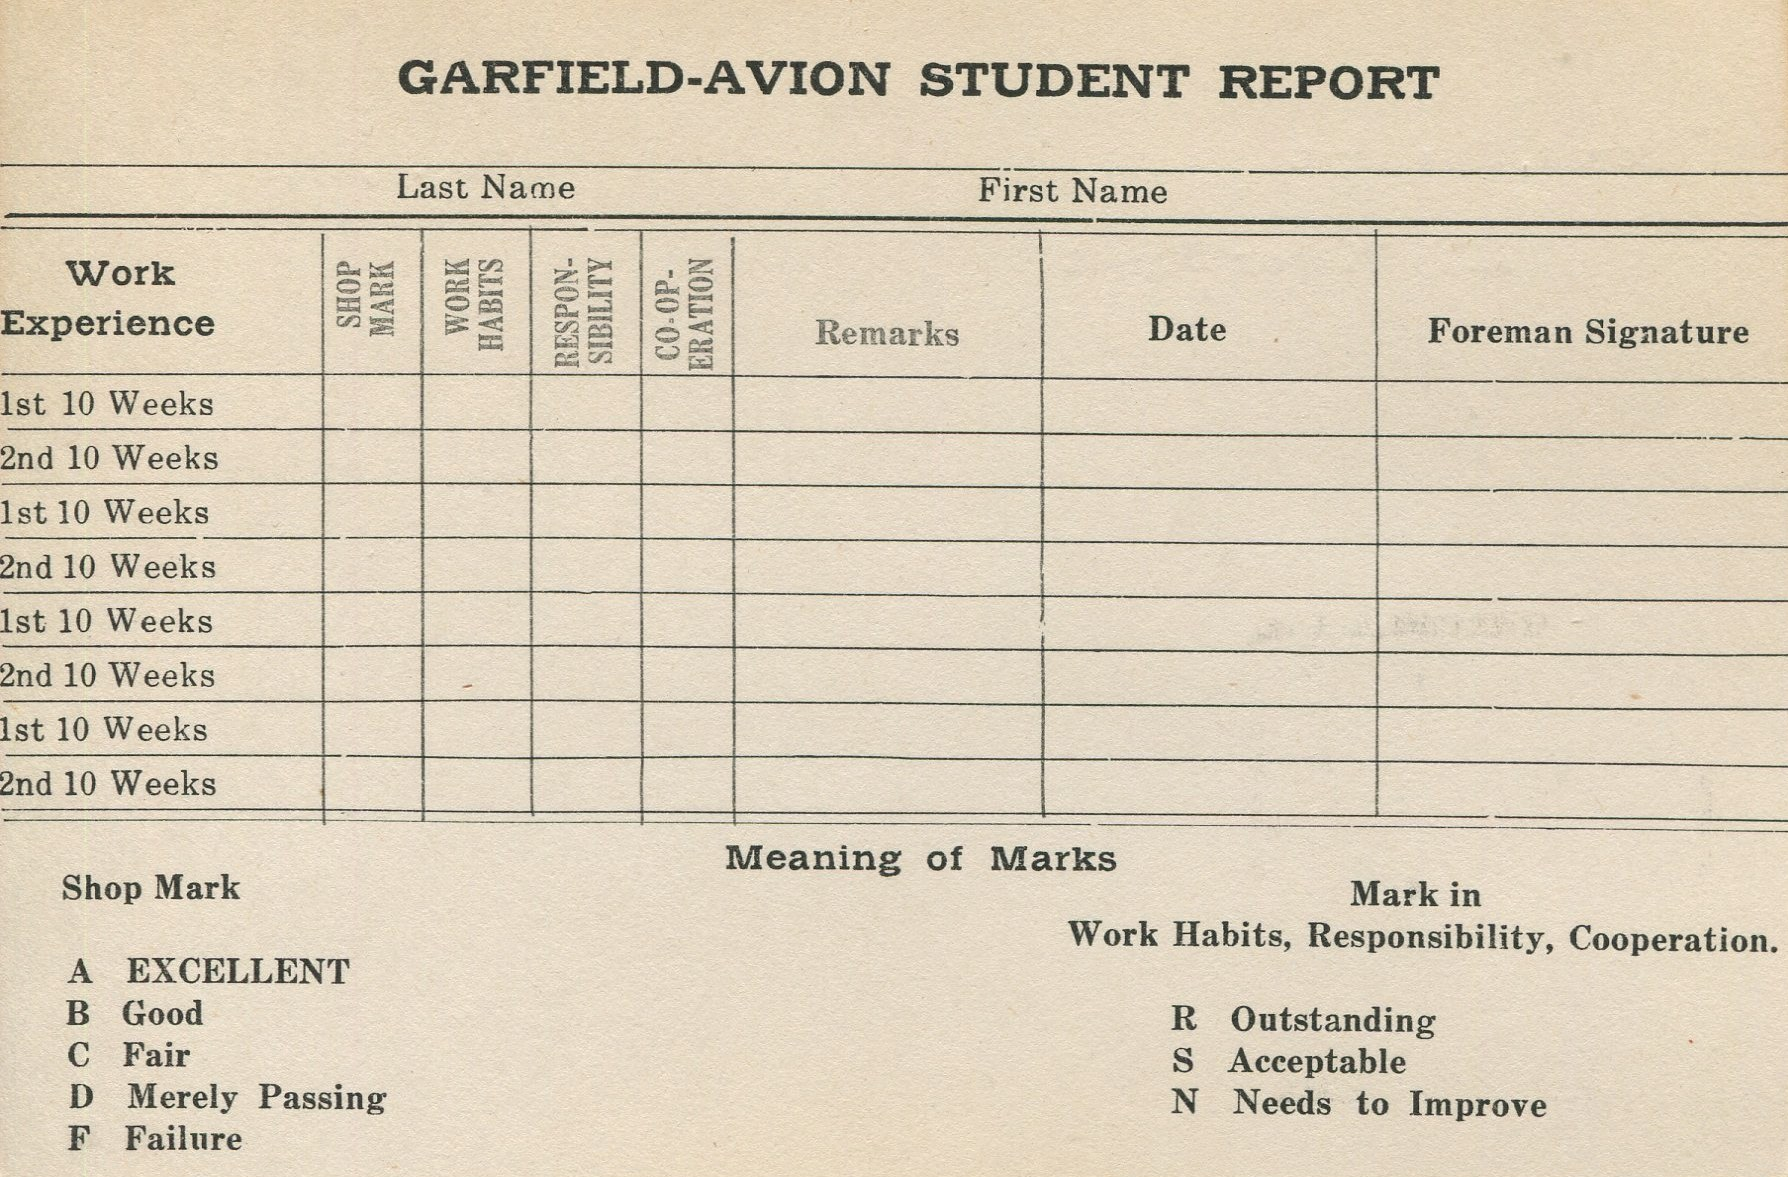 Report Card for Garfield-Avion